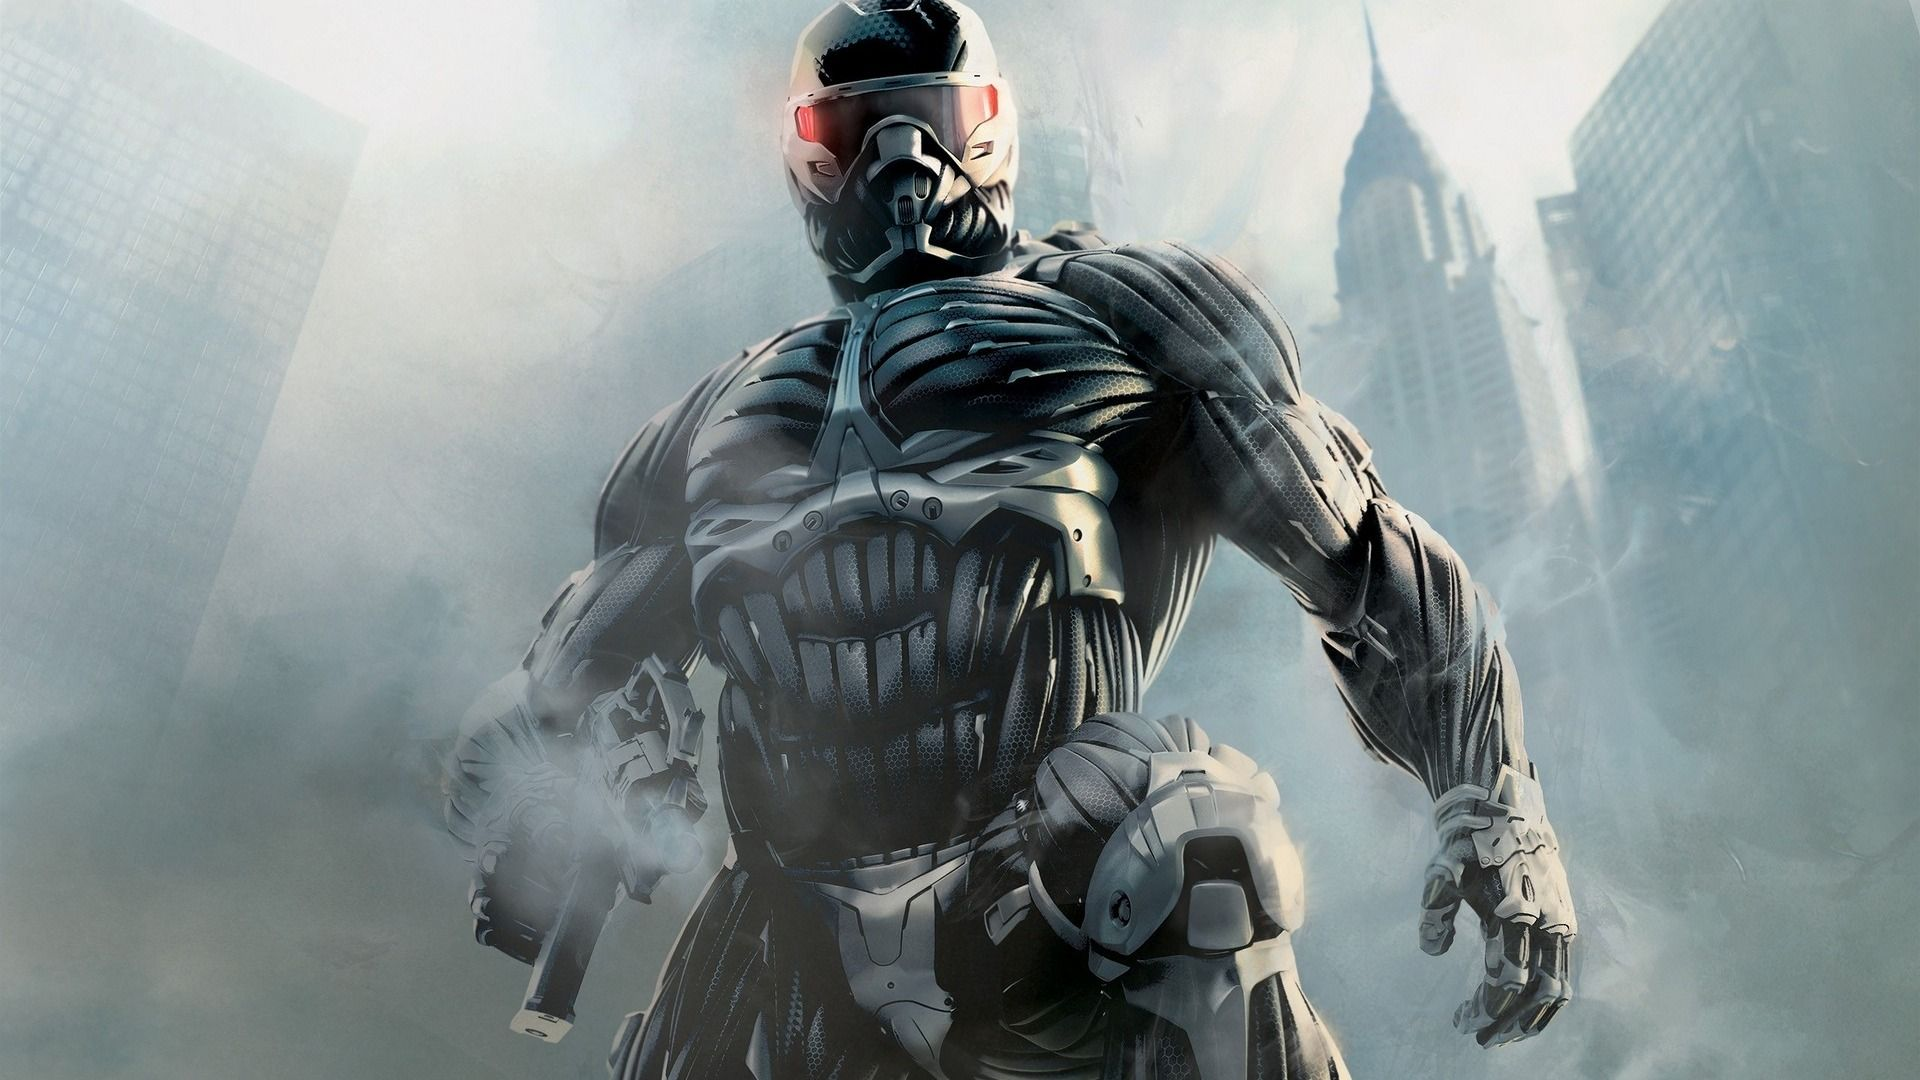 Crysis Wallpaper Hd 1920x1080 43 Wallpapers